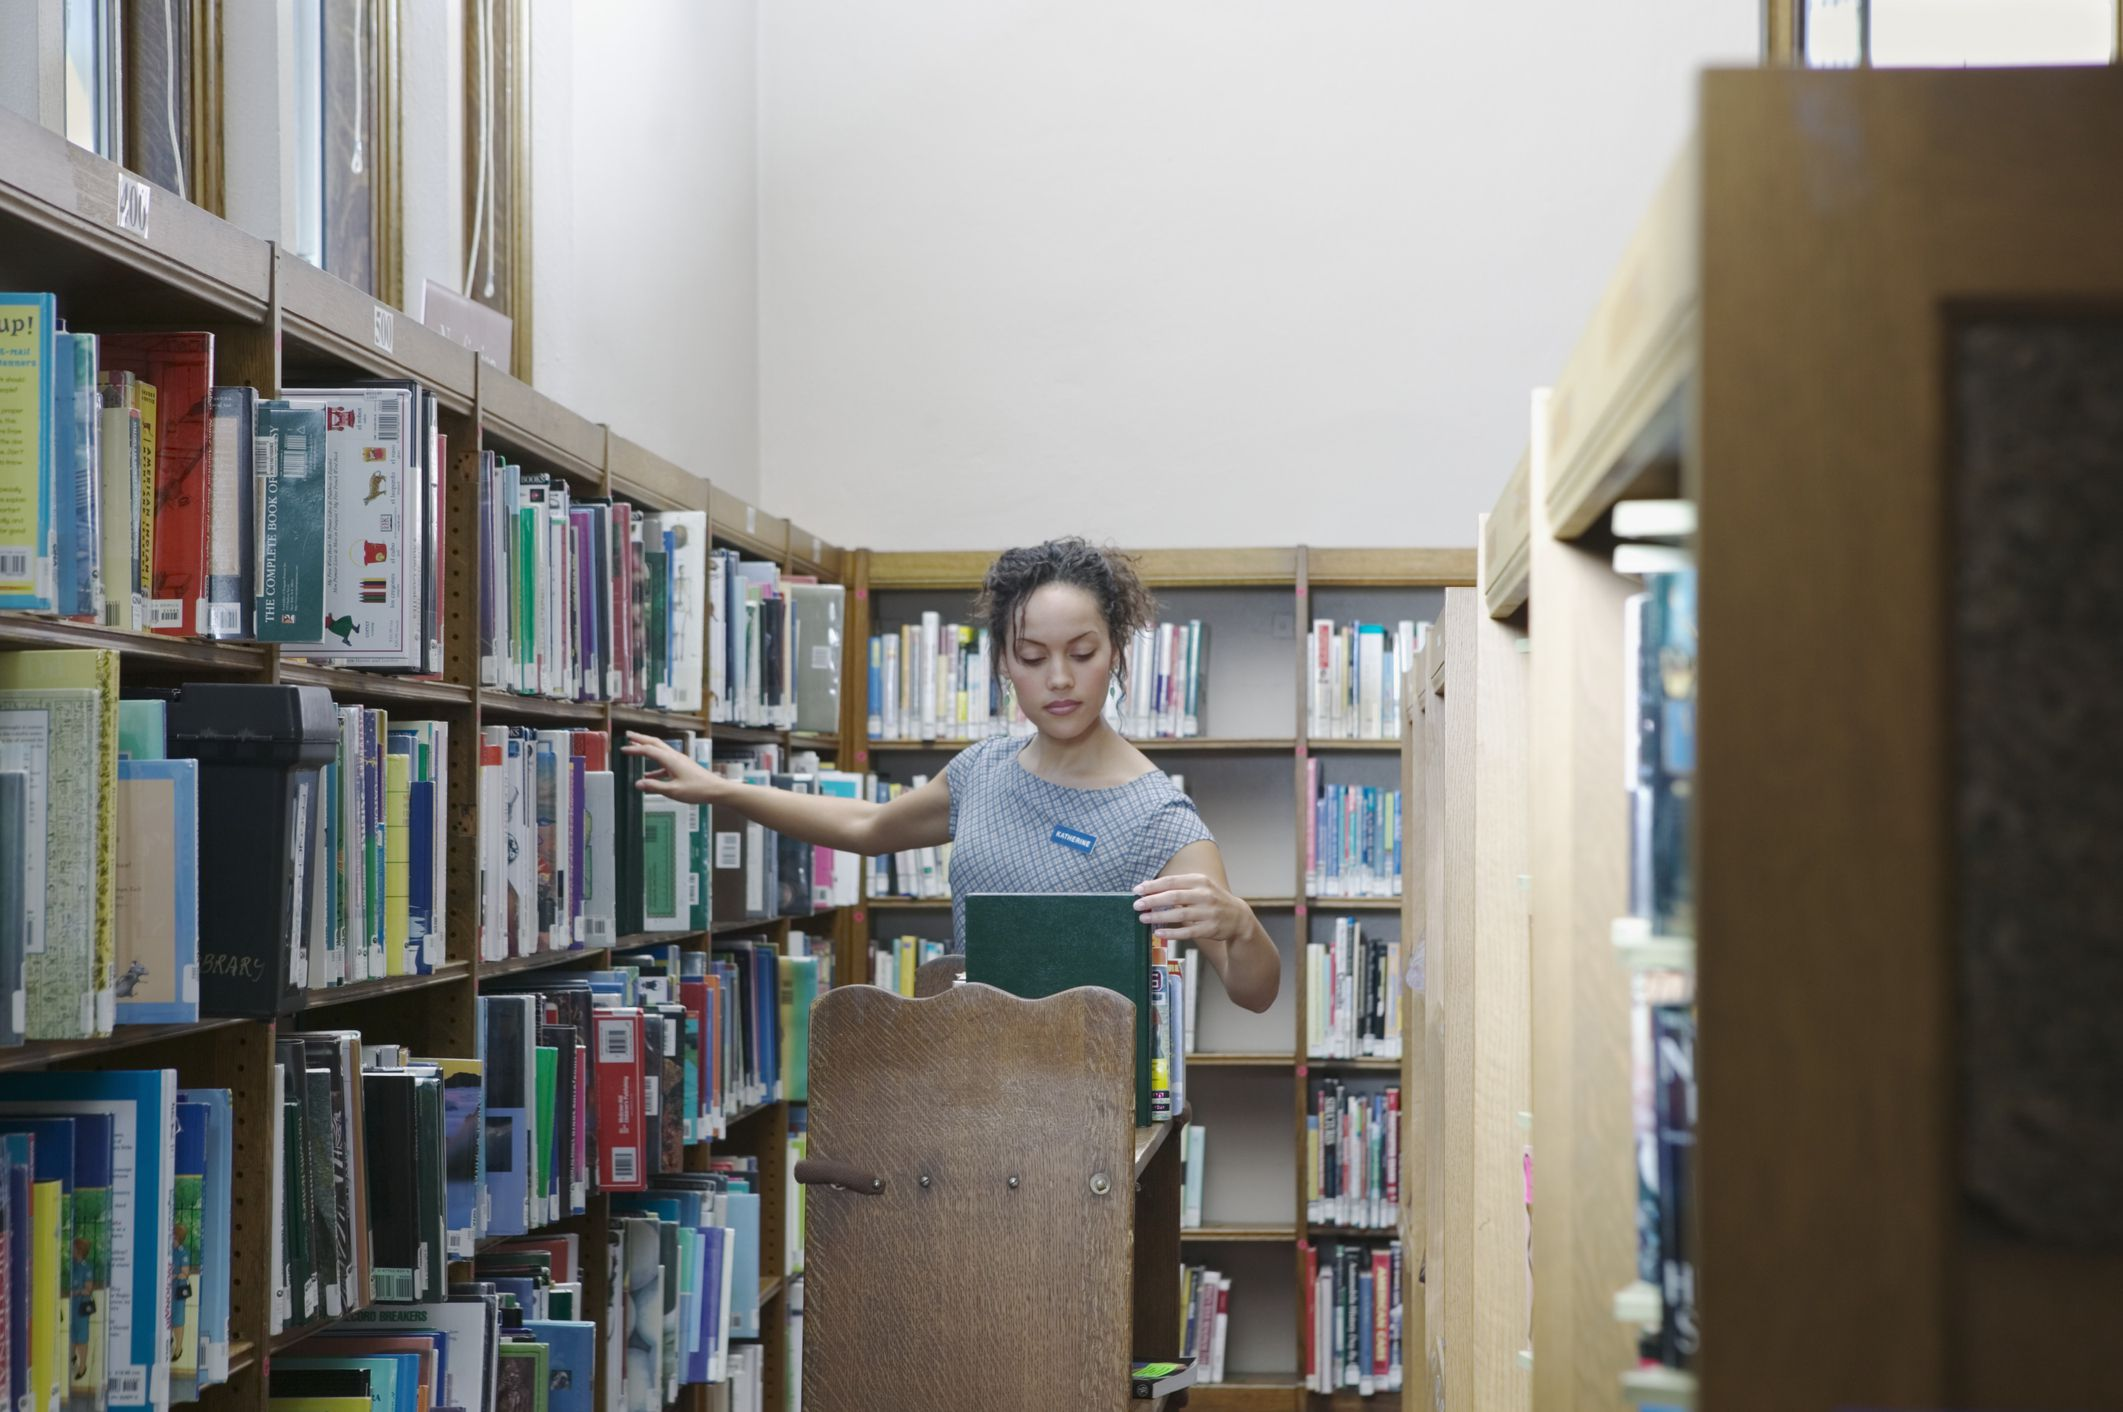 your school library essay Take a tour of questia school's online library and research tools learn how to create highlights, notes, bookmarks, and generate automatic bibliographies and citations.